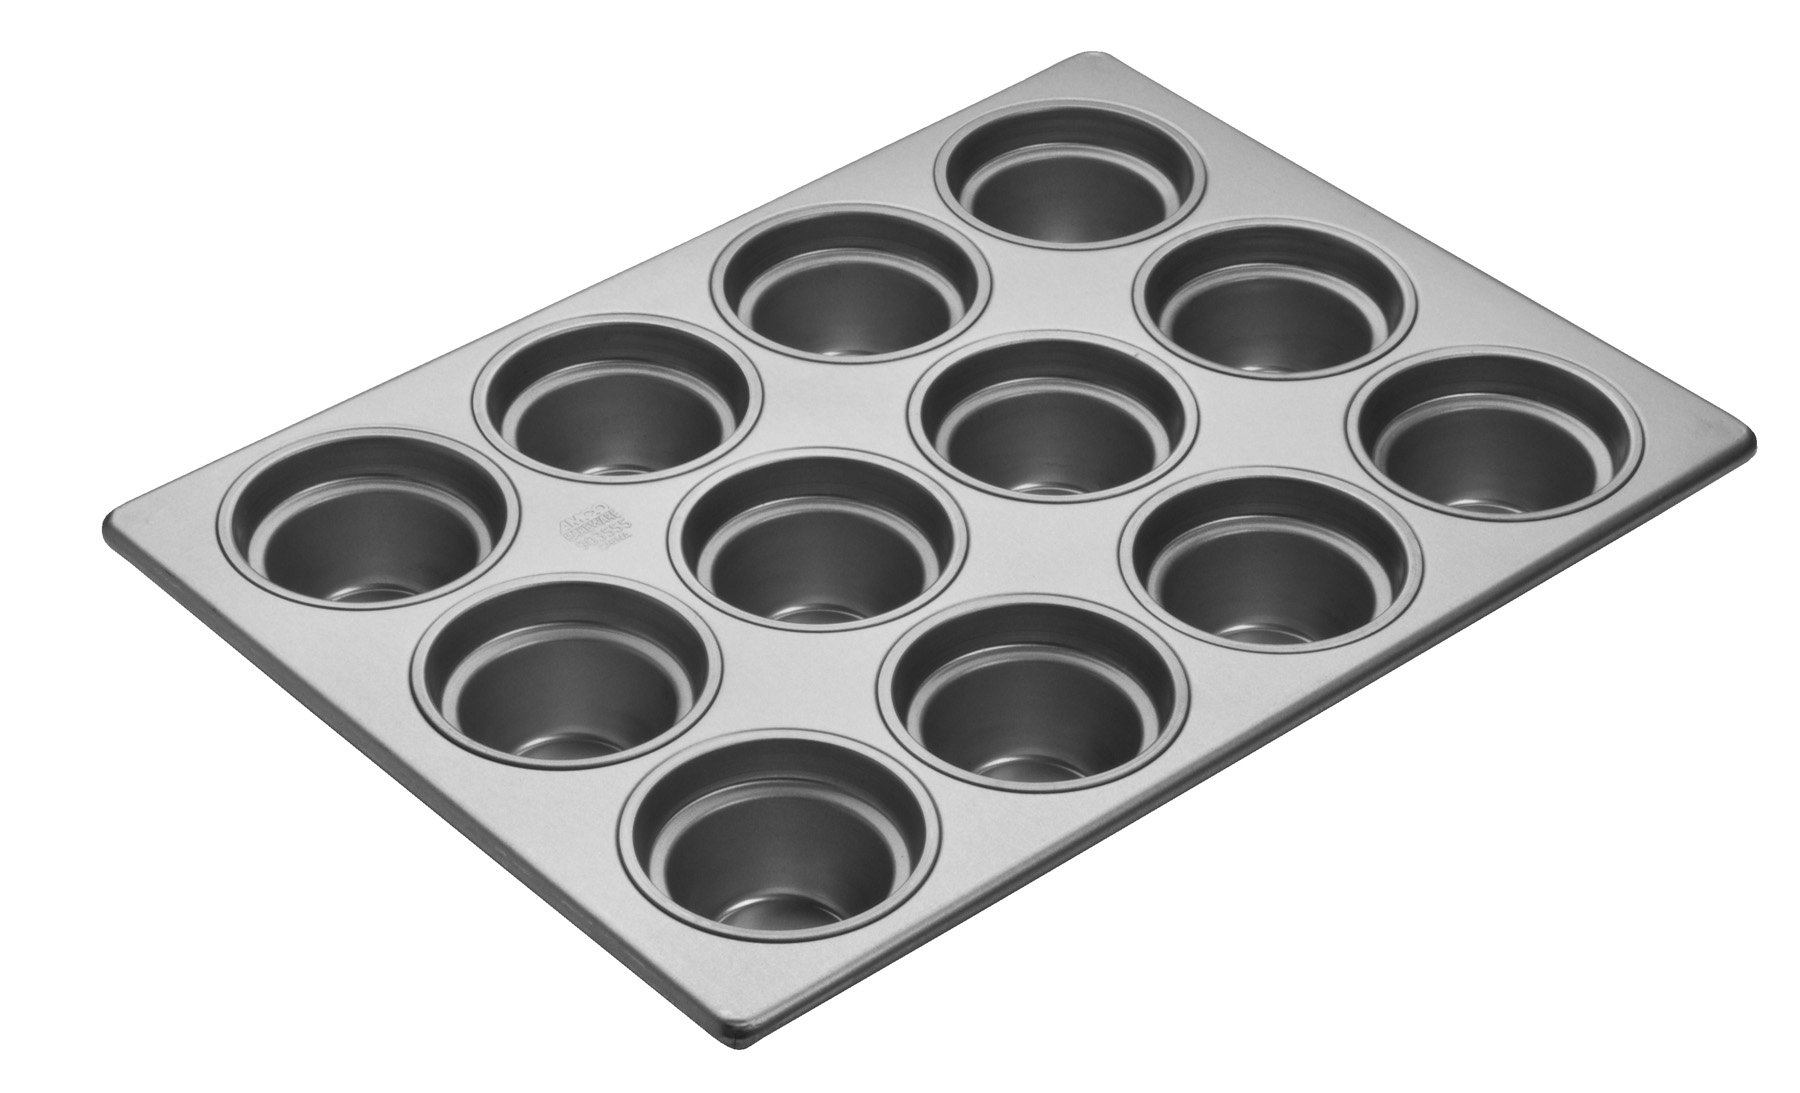 Commercial Bakeware Large Crown Muffin Pan, 12-Cup by Focus Foodservice